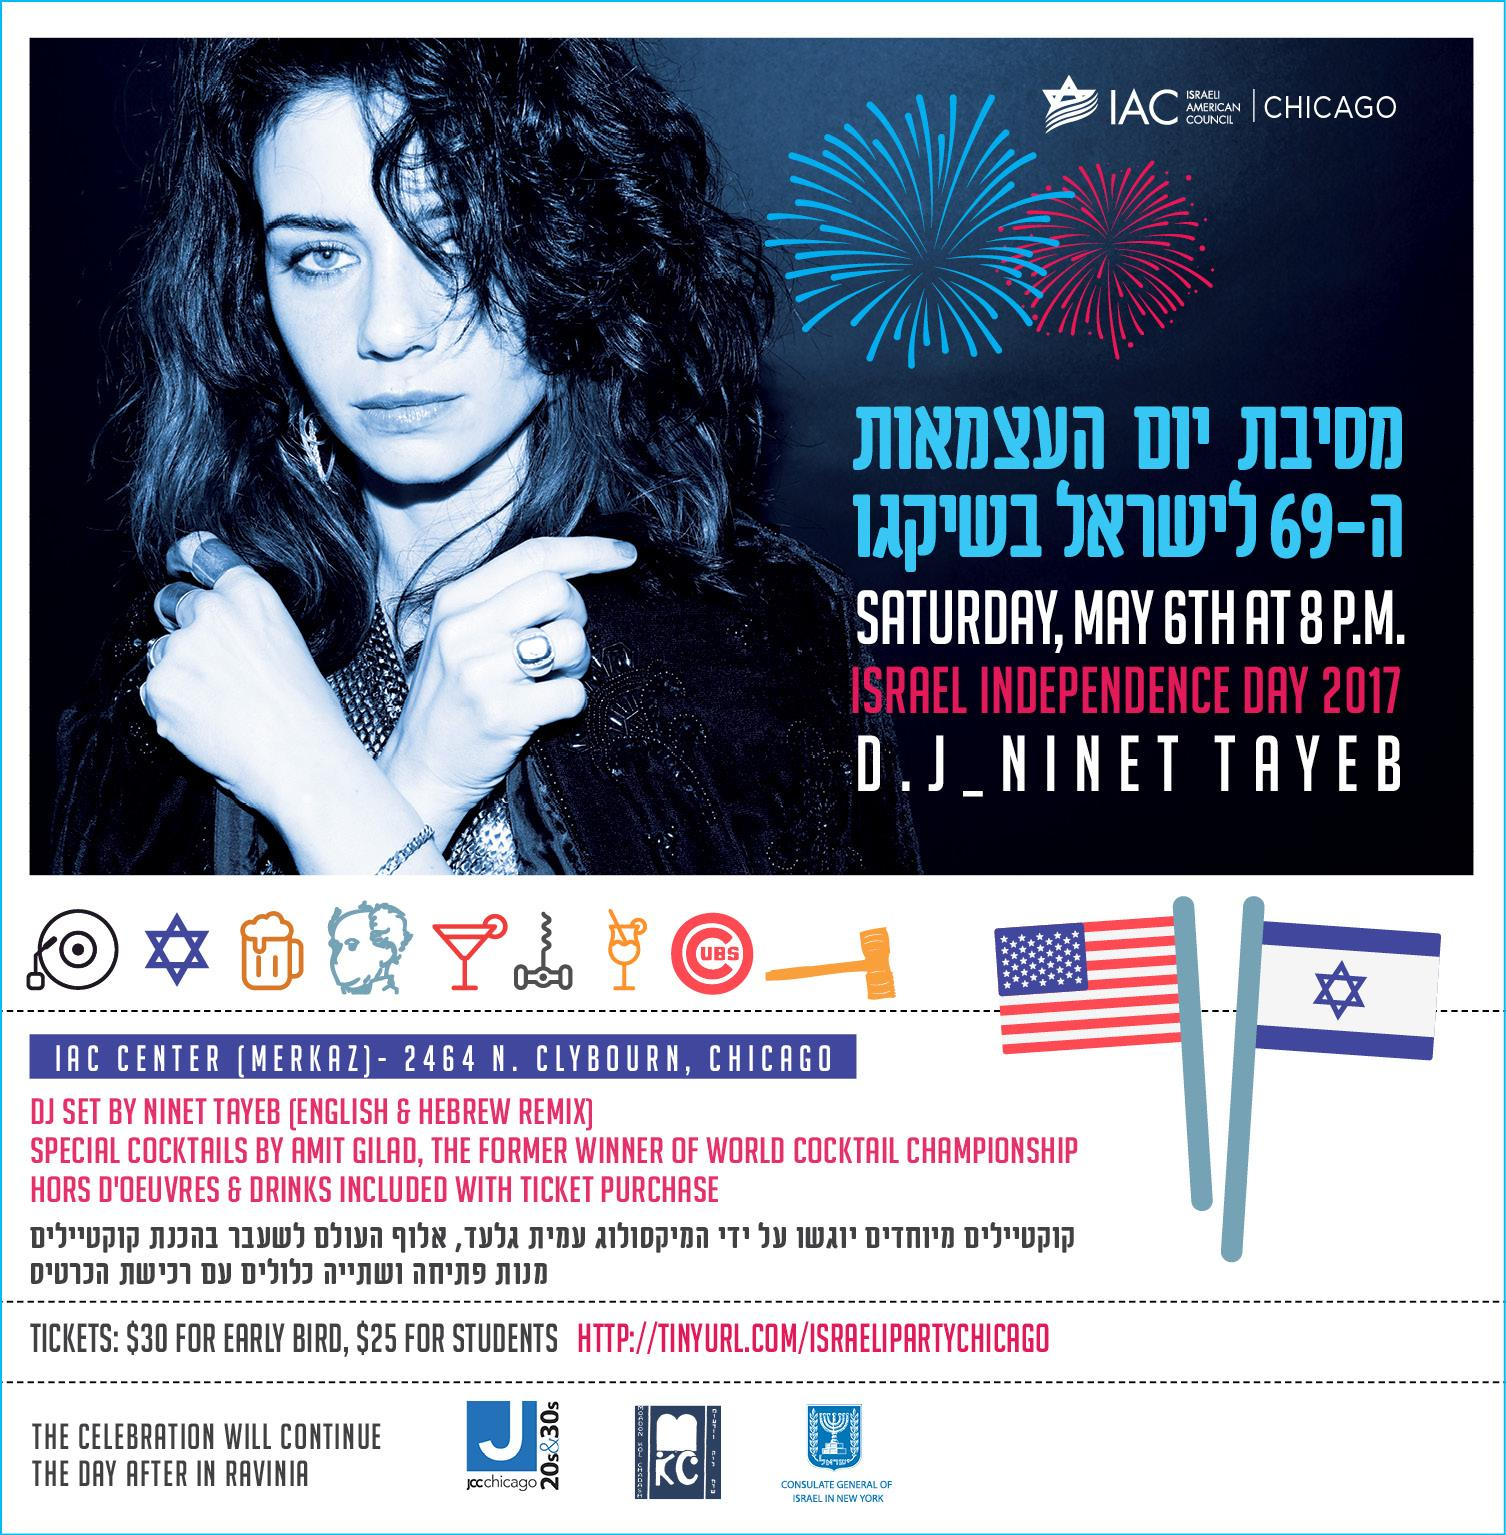 Israel Independence Day celebration with DJ N